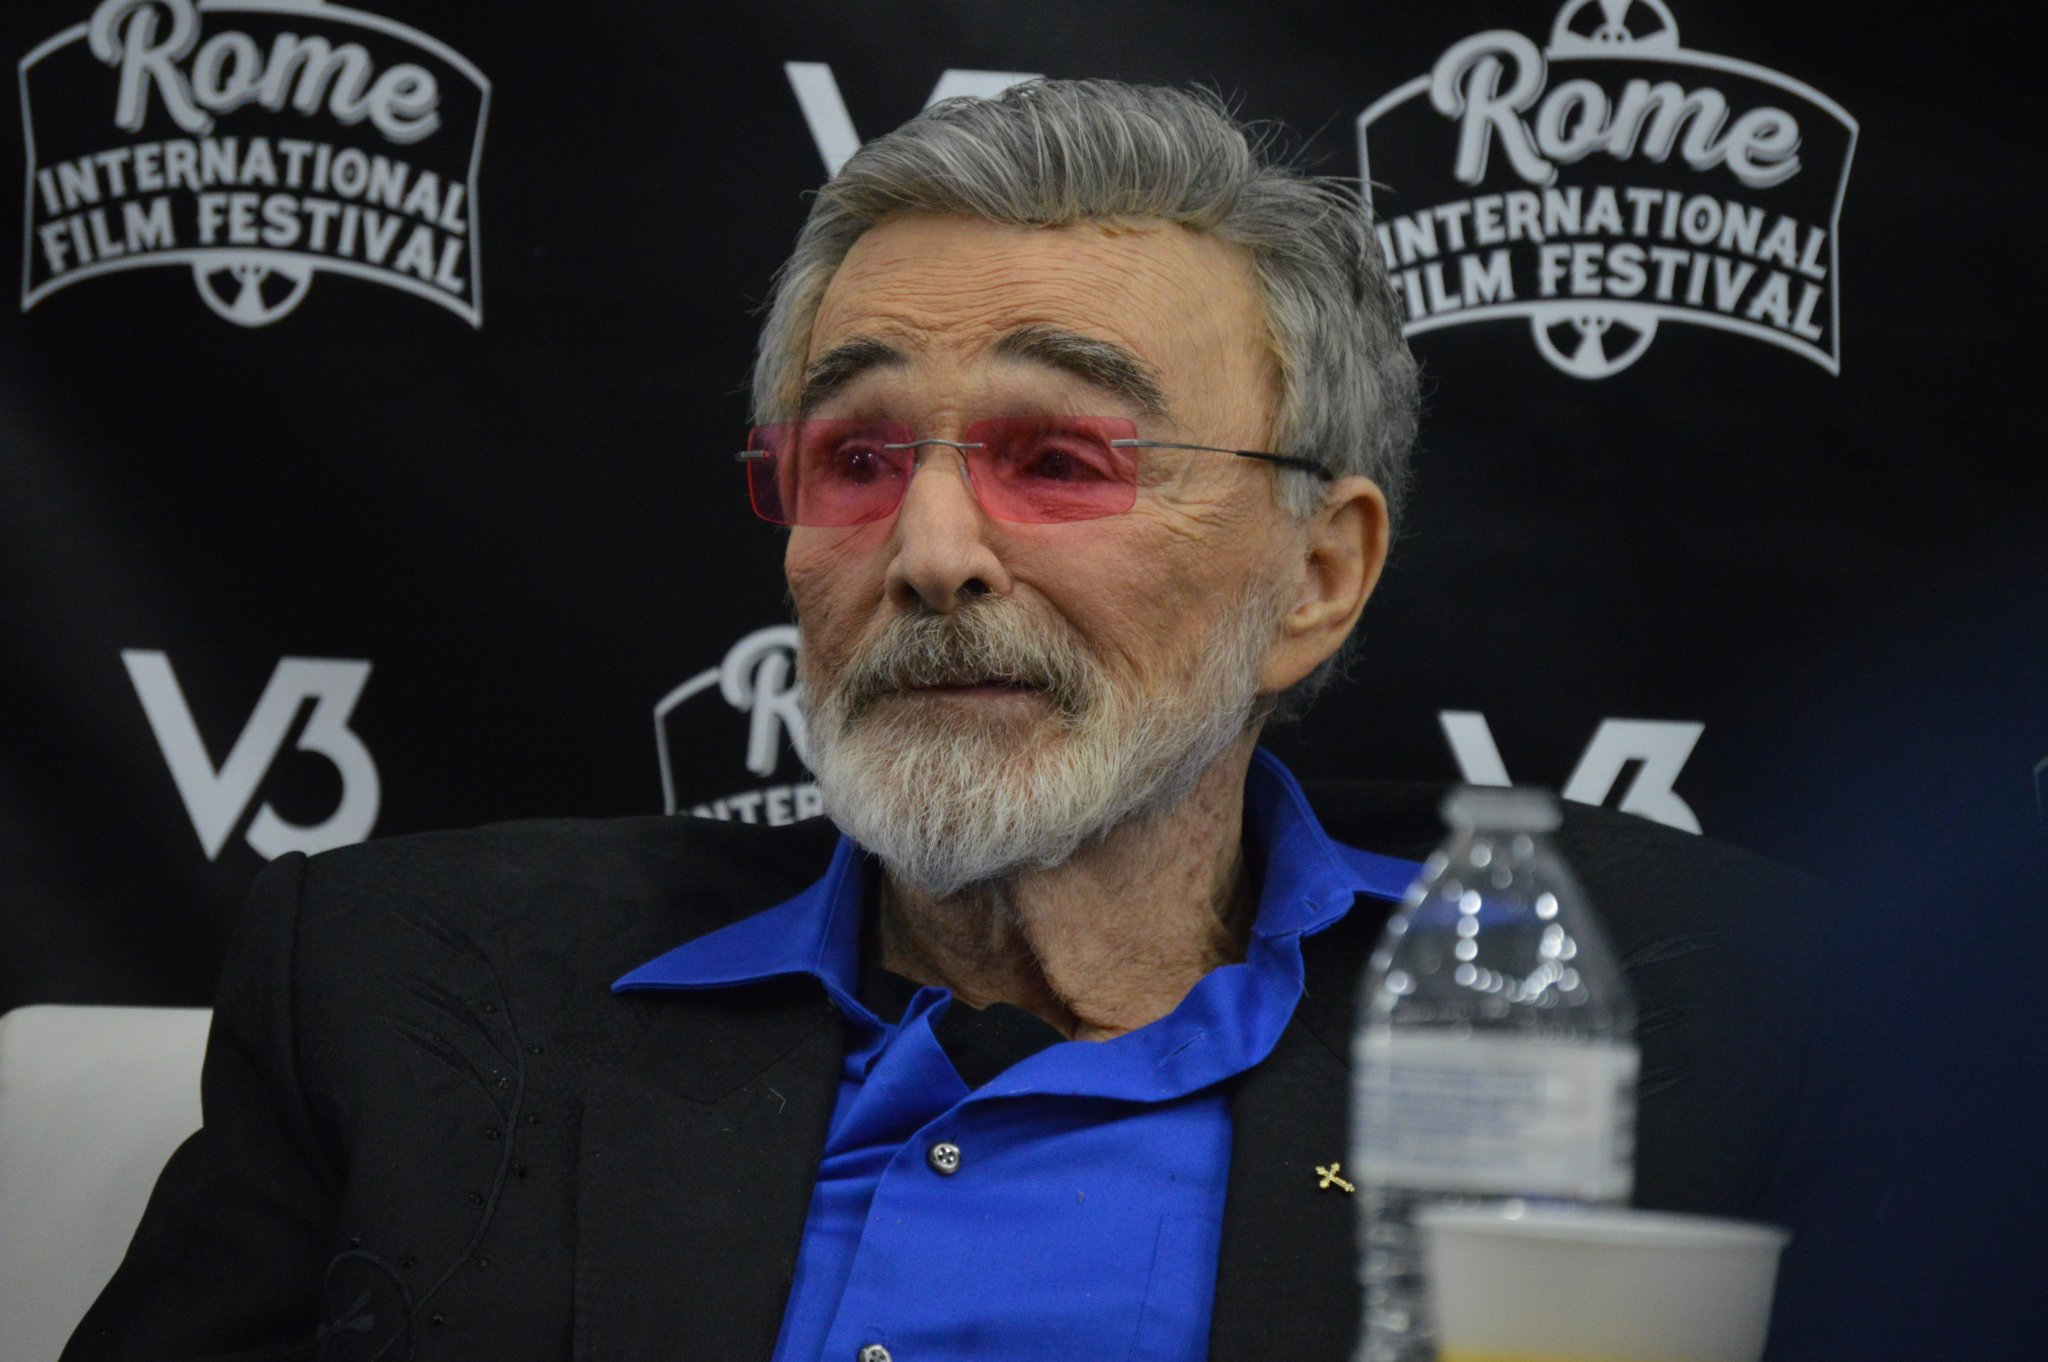 Happy Birthday to Burt Reynolds! We fondly remember his visit to Rome during the last year!